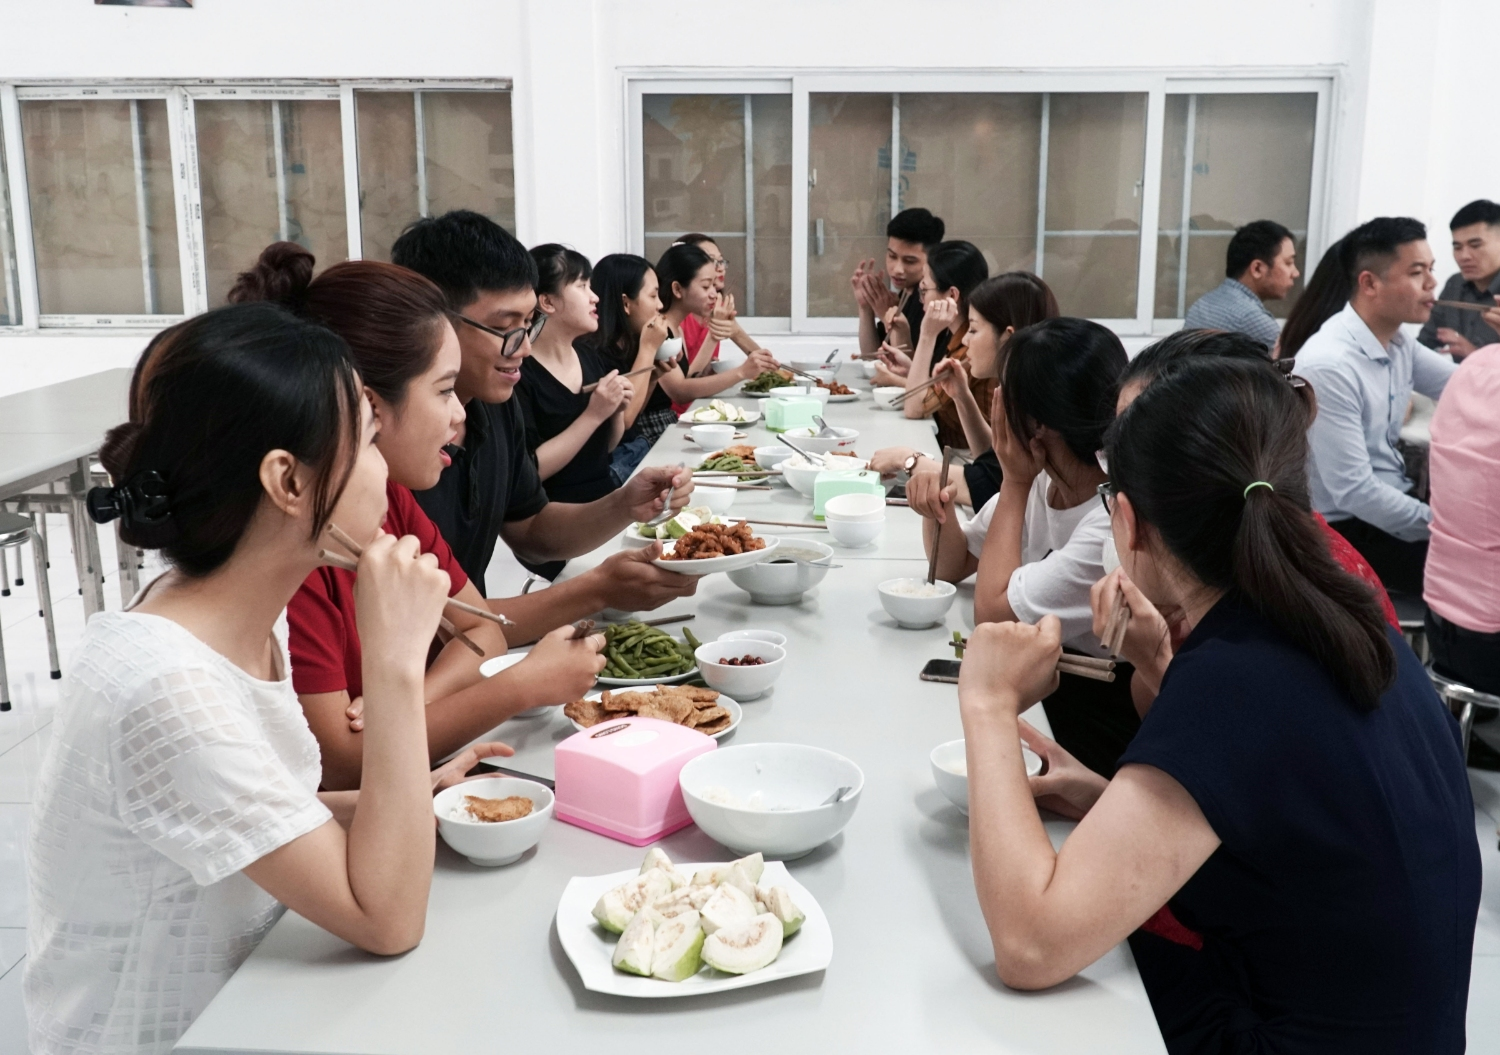 Kim Nam Group and cultural message from lunch